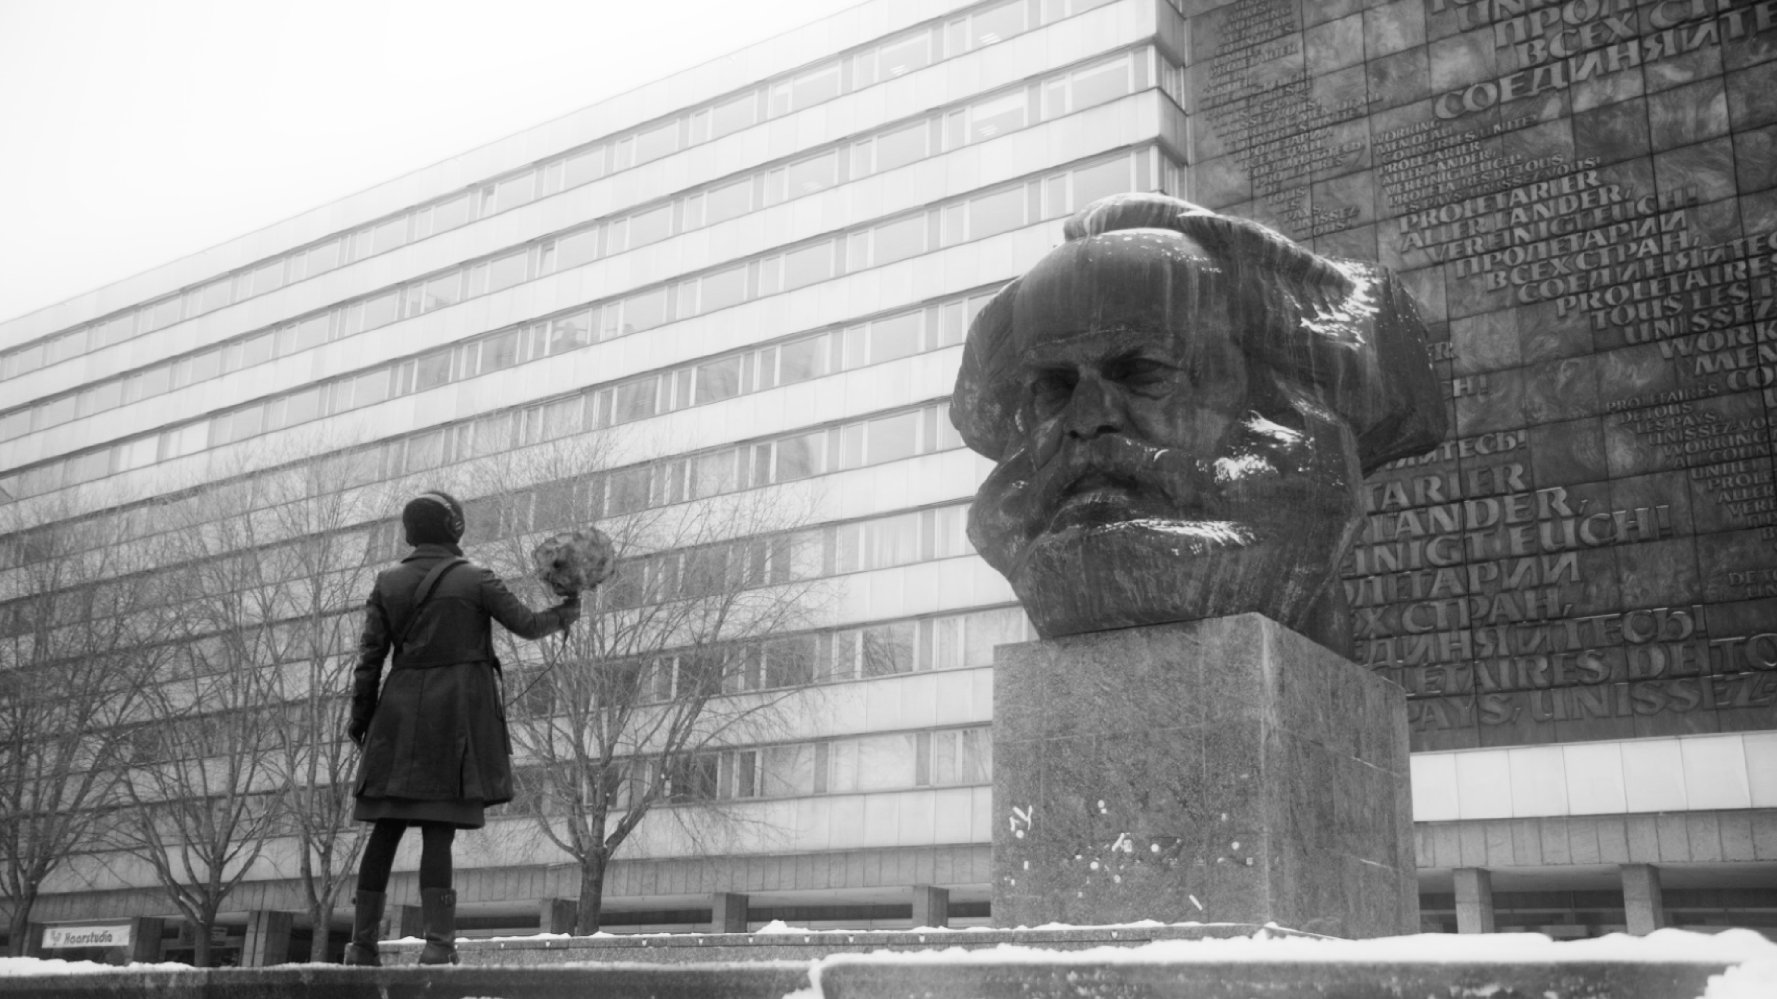 Chinese Regime to Gift Karl Marx Statue to German Town